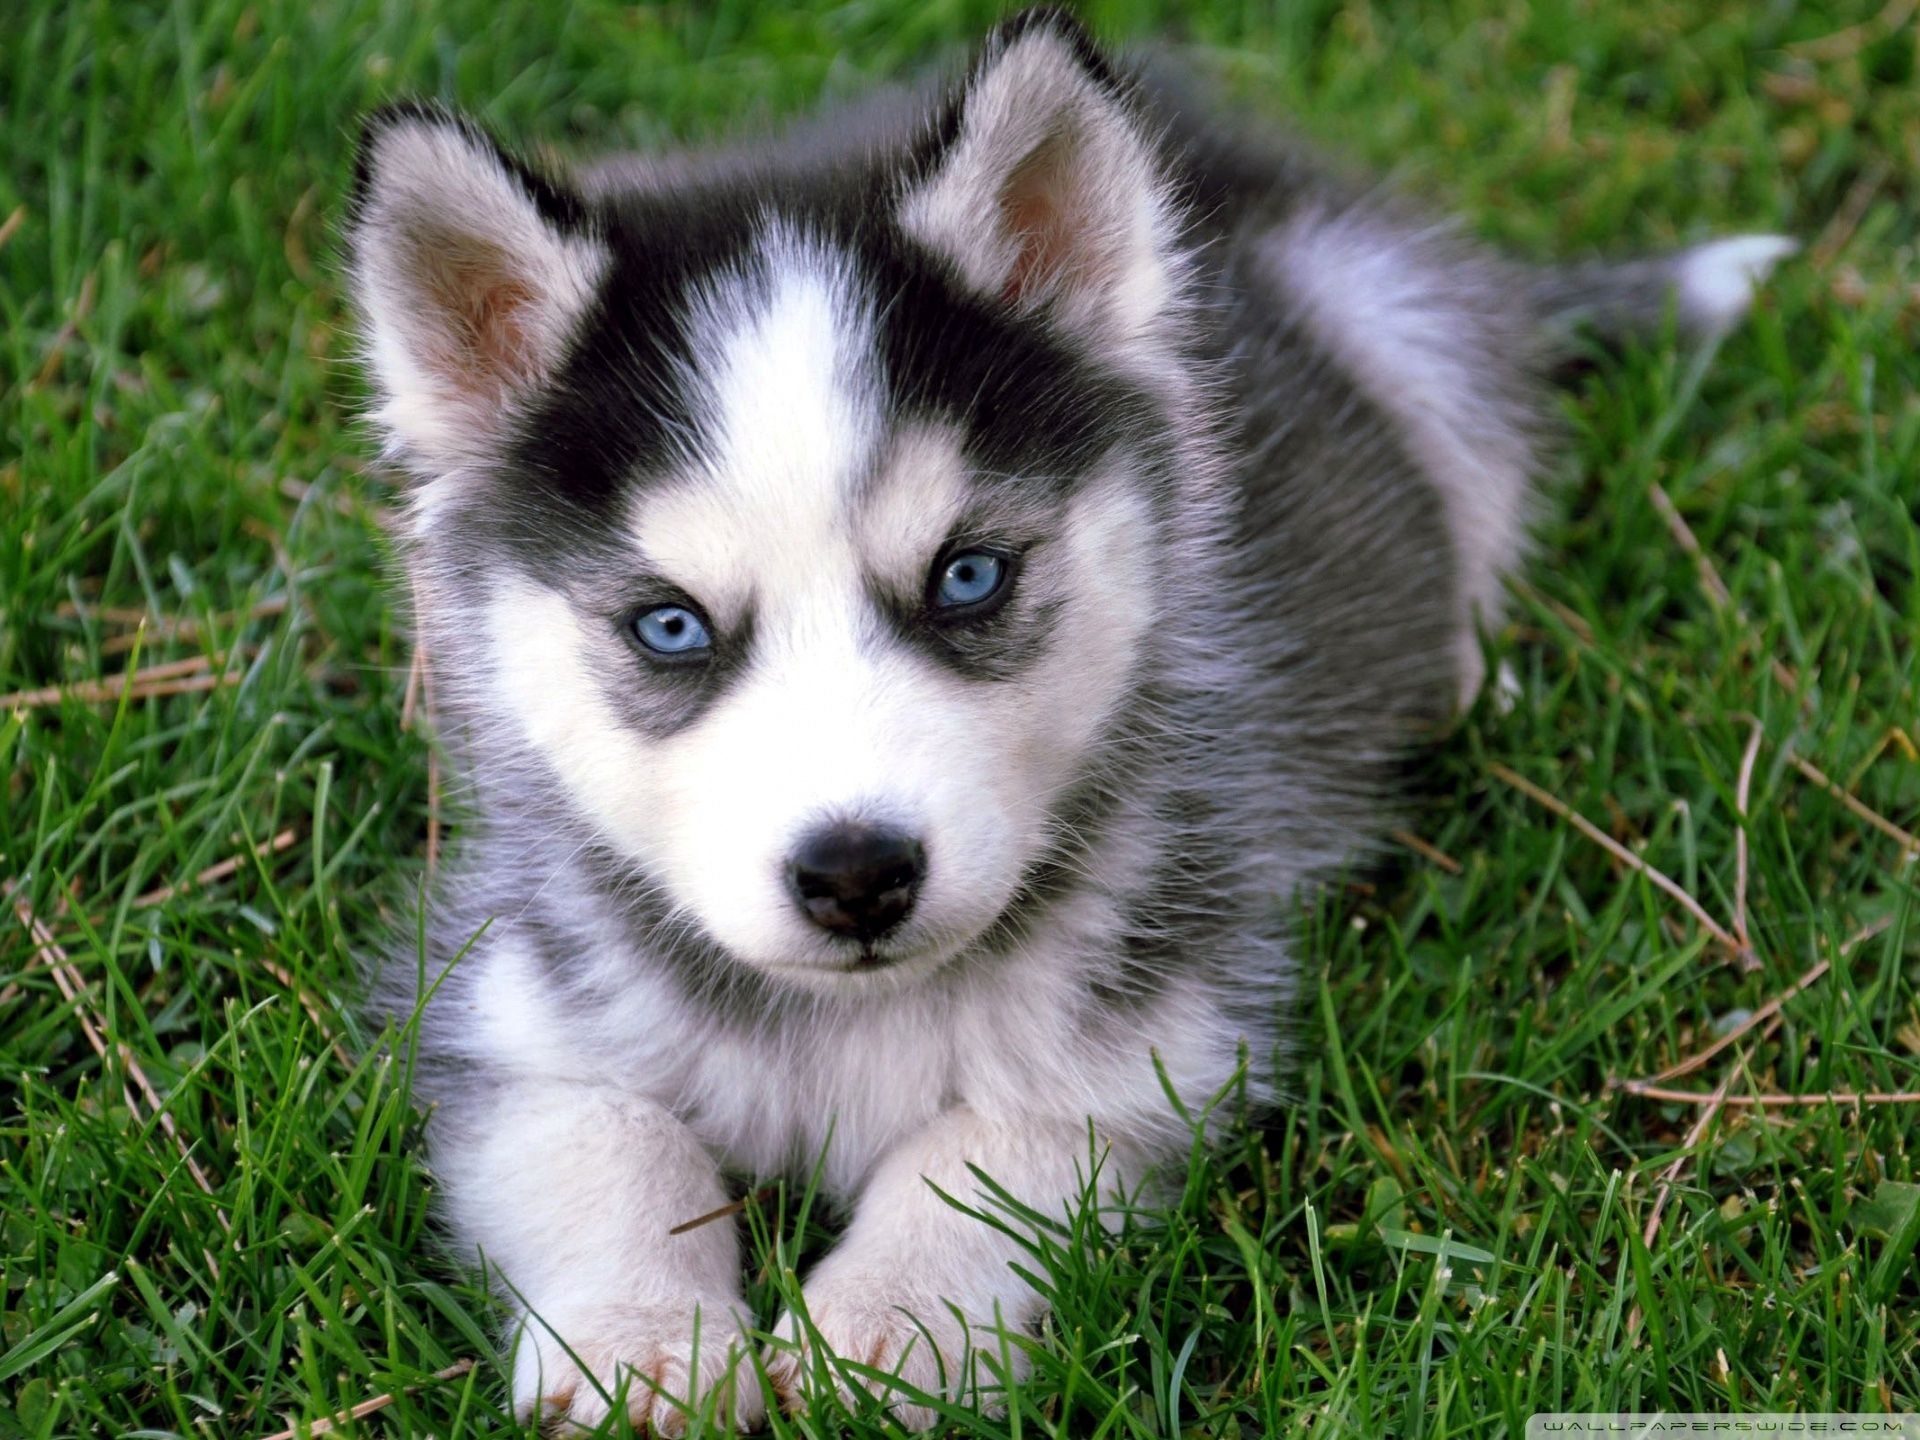 Husky Puppies Wallpapers Full HD # 4ZF9C6I | WallpapersExpert.com